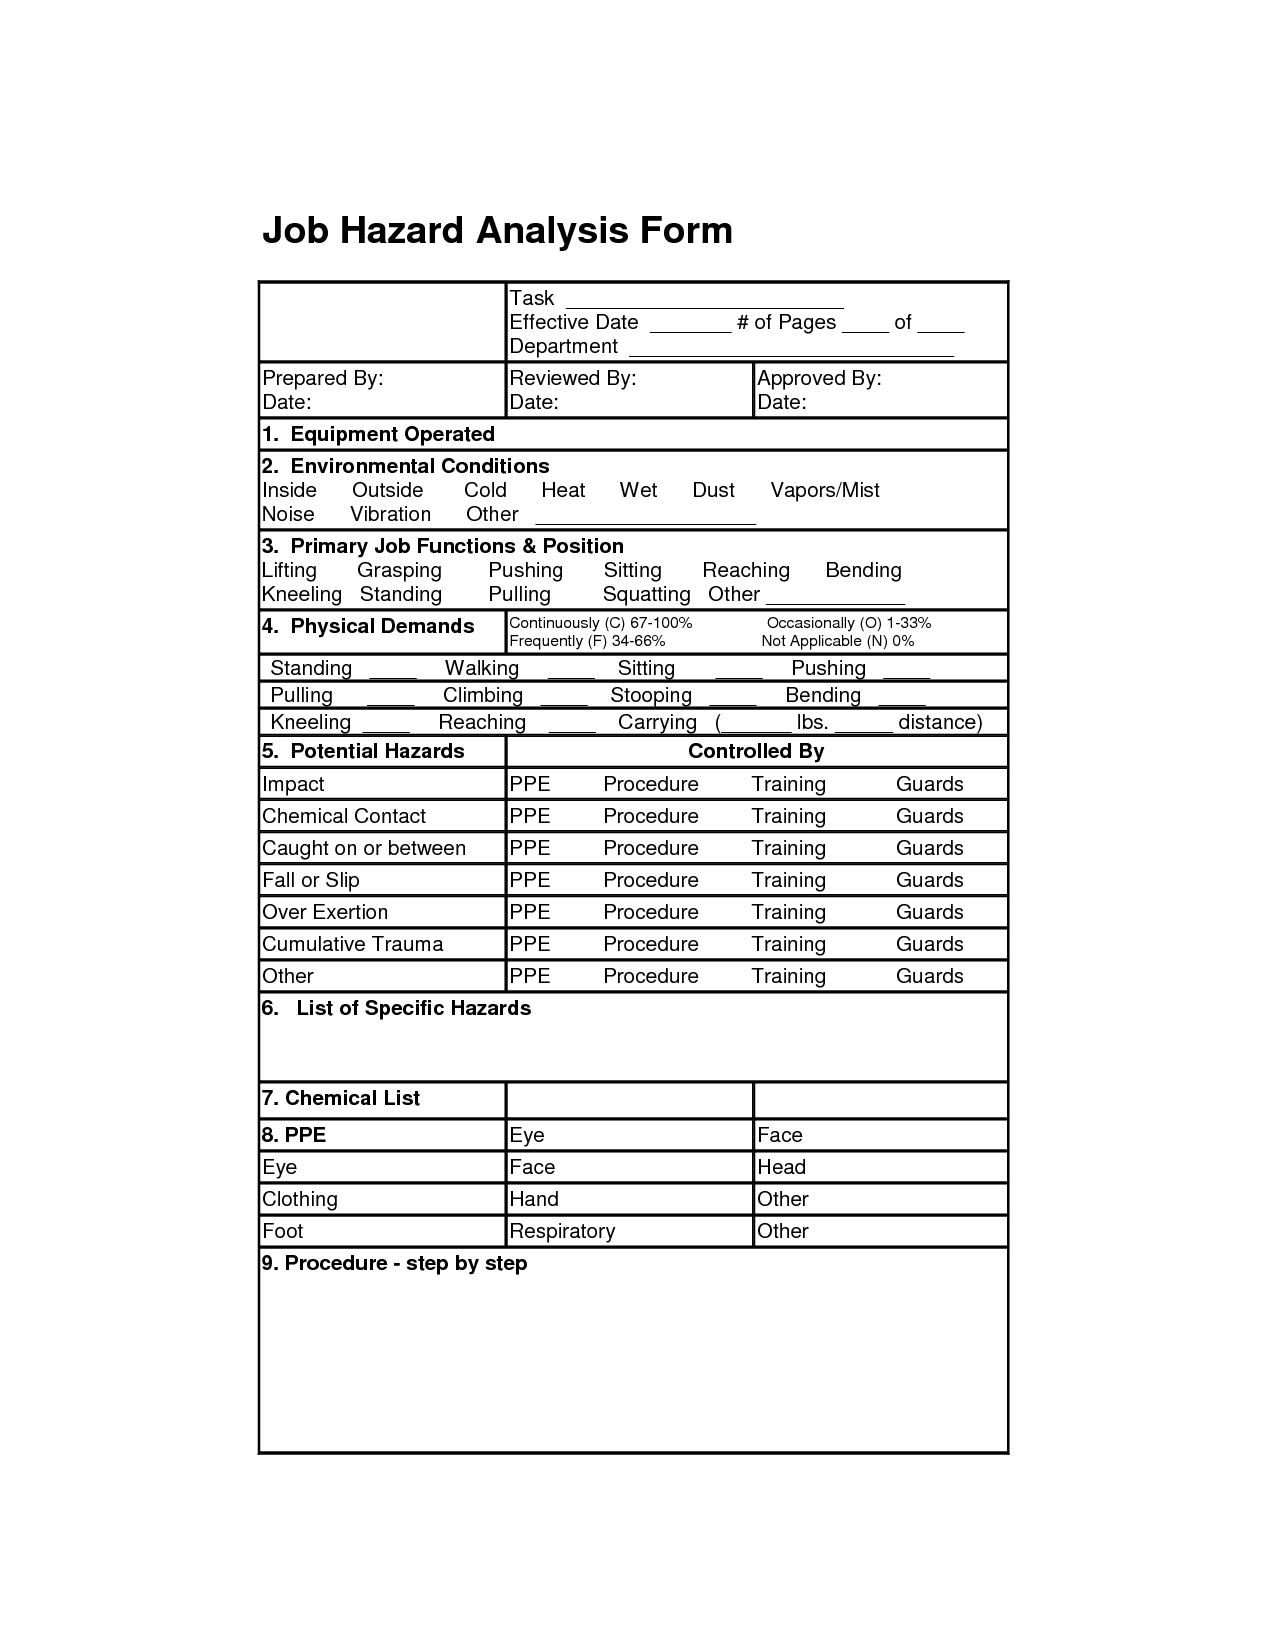 Job Hazard Analysis Form Job Analysis Forms – Job Hazard Analysis Worksheet